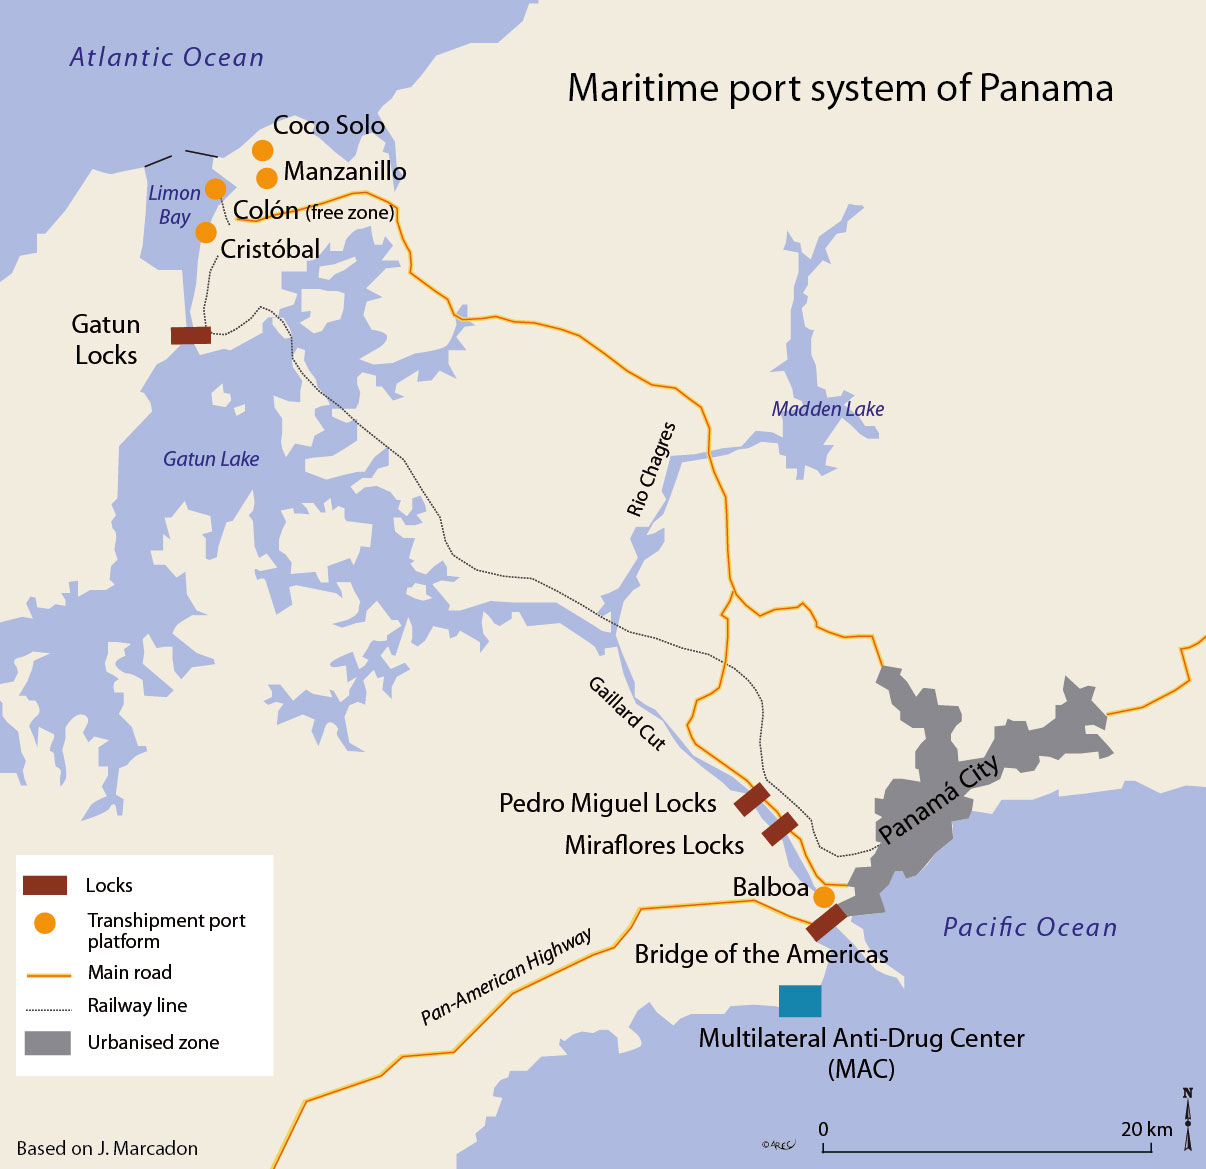 caribbean atlas which would be reimbursed by canal users in the medium term through an annual 3 5% rise in tolls and a loan of 2 billion dollars repayable in 8 years